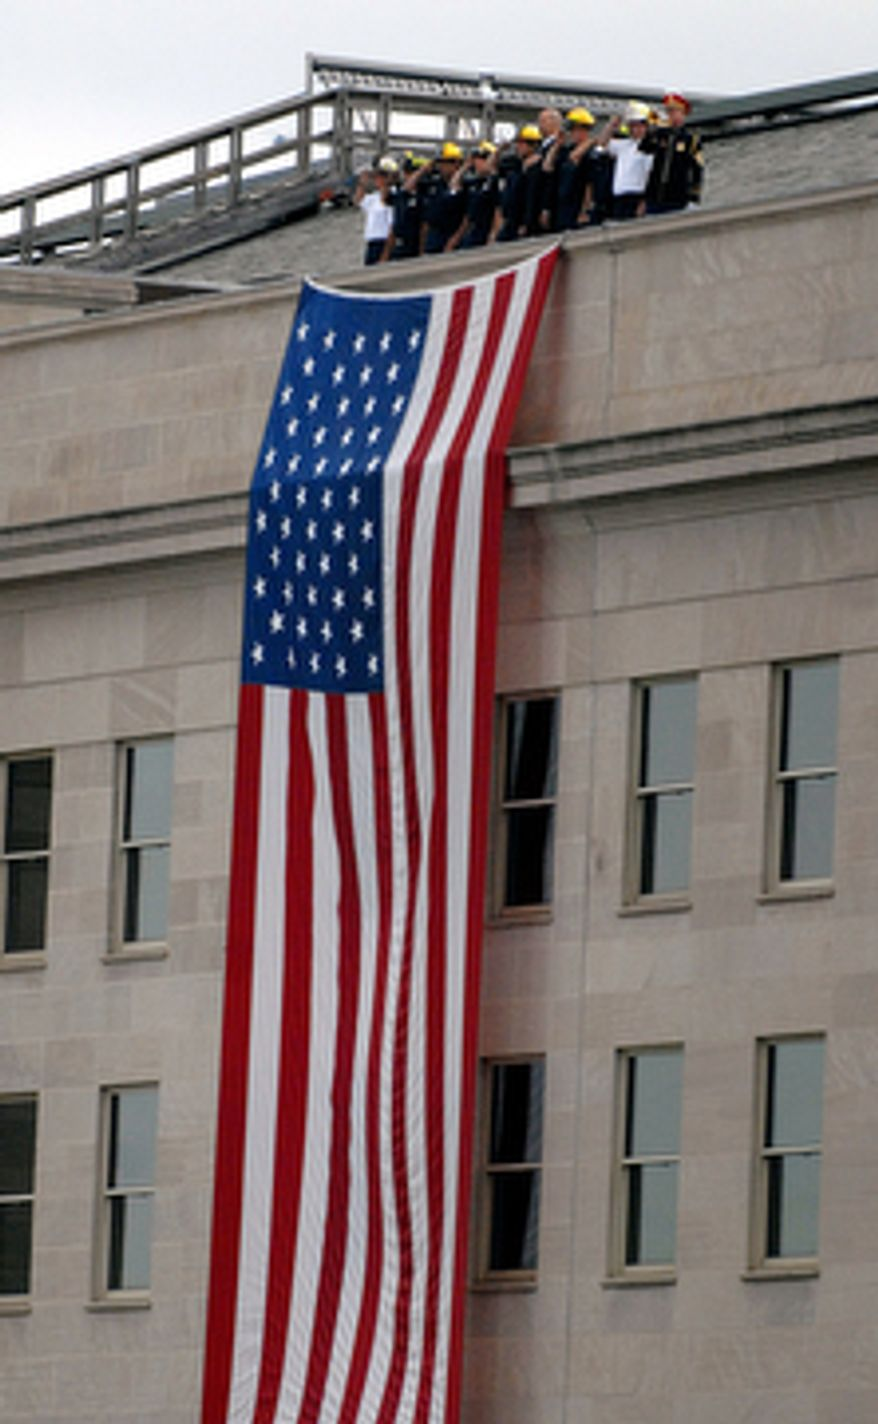 First responders stand attention next to the U.S. flag during the Pentagon Memorial Dedication ceremony remembering the 184 victims killed during the September 11 terrorist attacks in 2001 outside the Pentagon in Pentagon City, Va.(Astrid Riecken/The Washington Times)